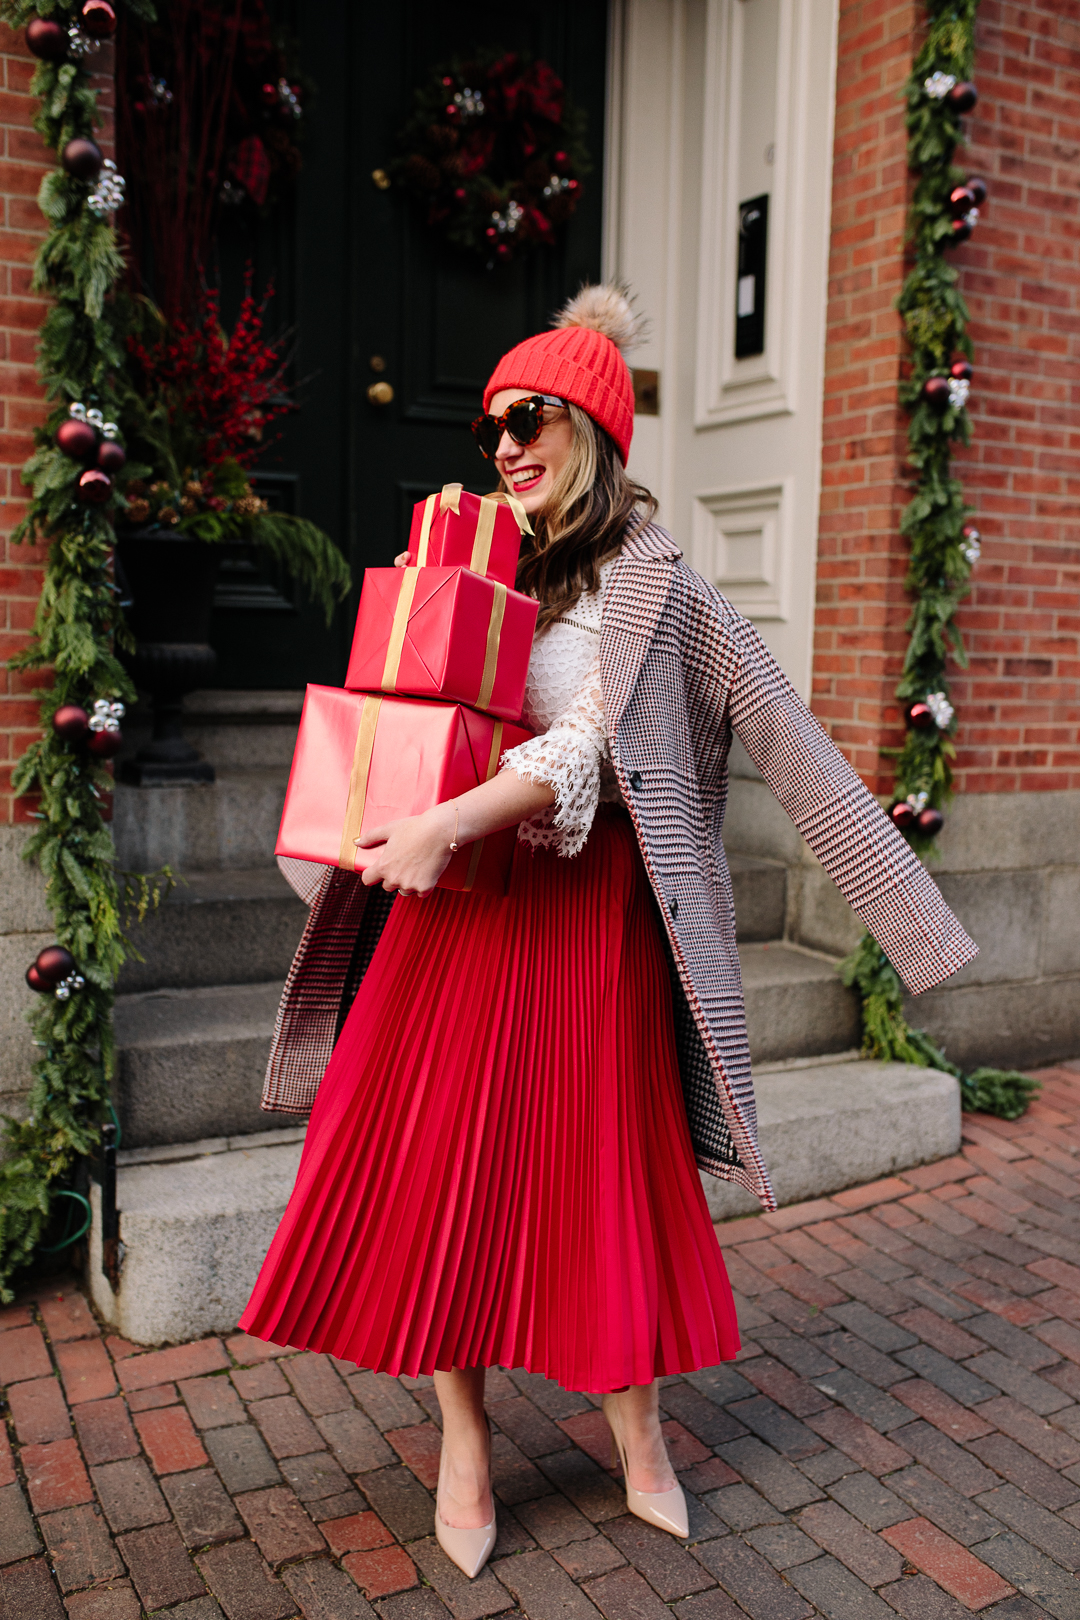 Boston Blogger, Kerrie M. Burke, wears a red midi skirt with a plaid coat